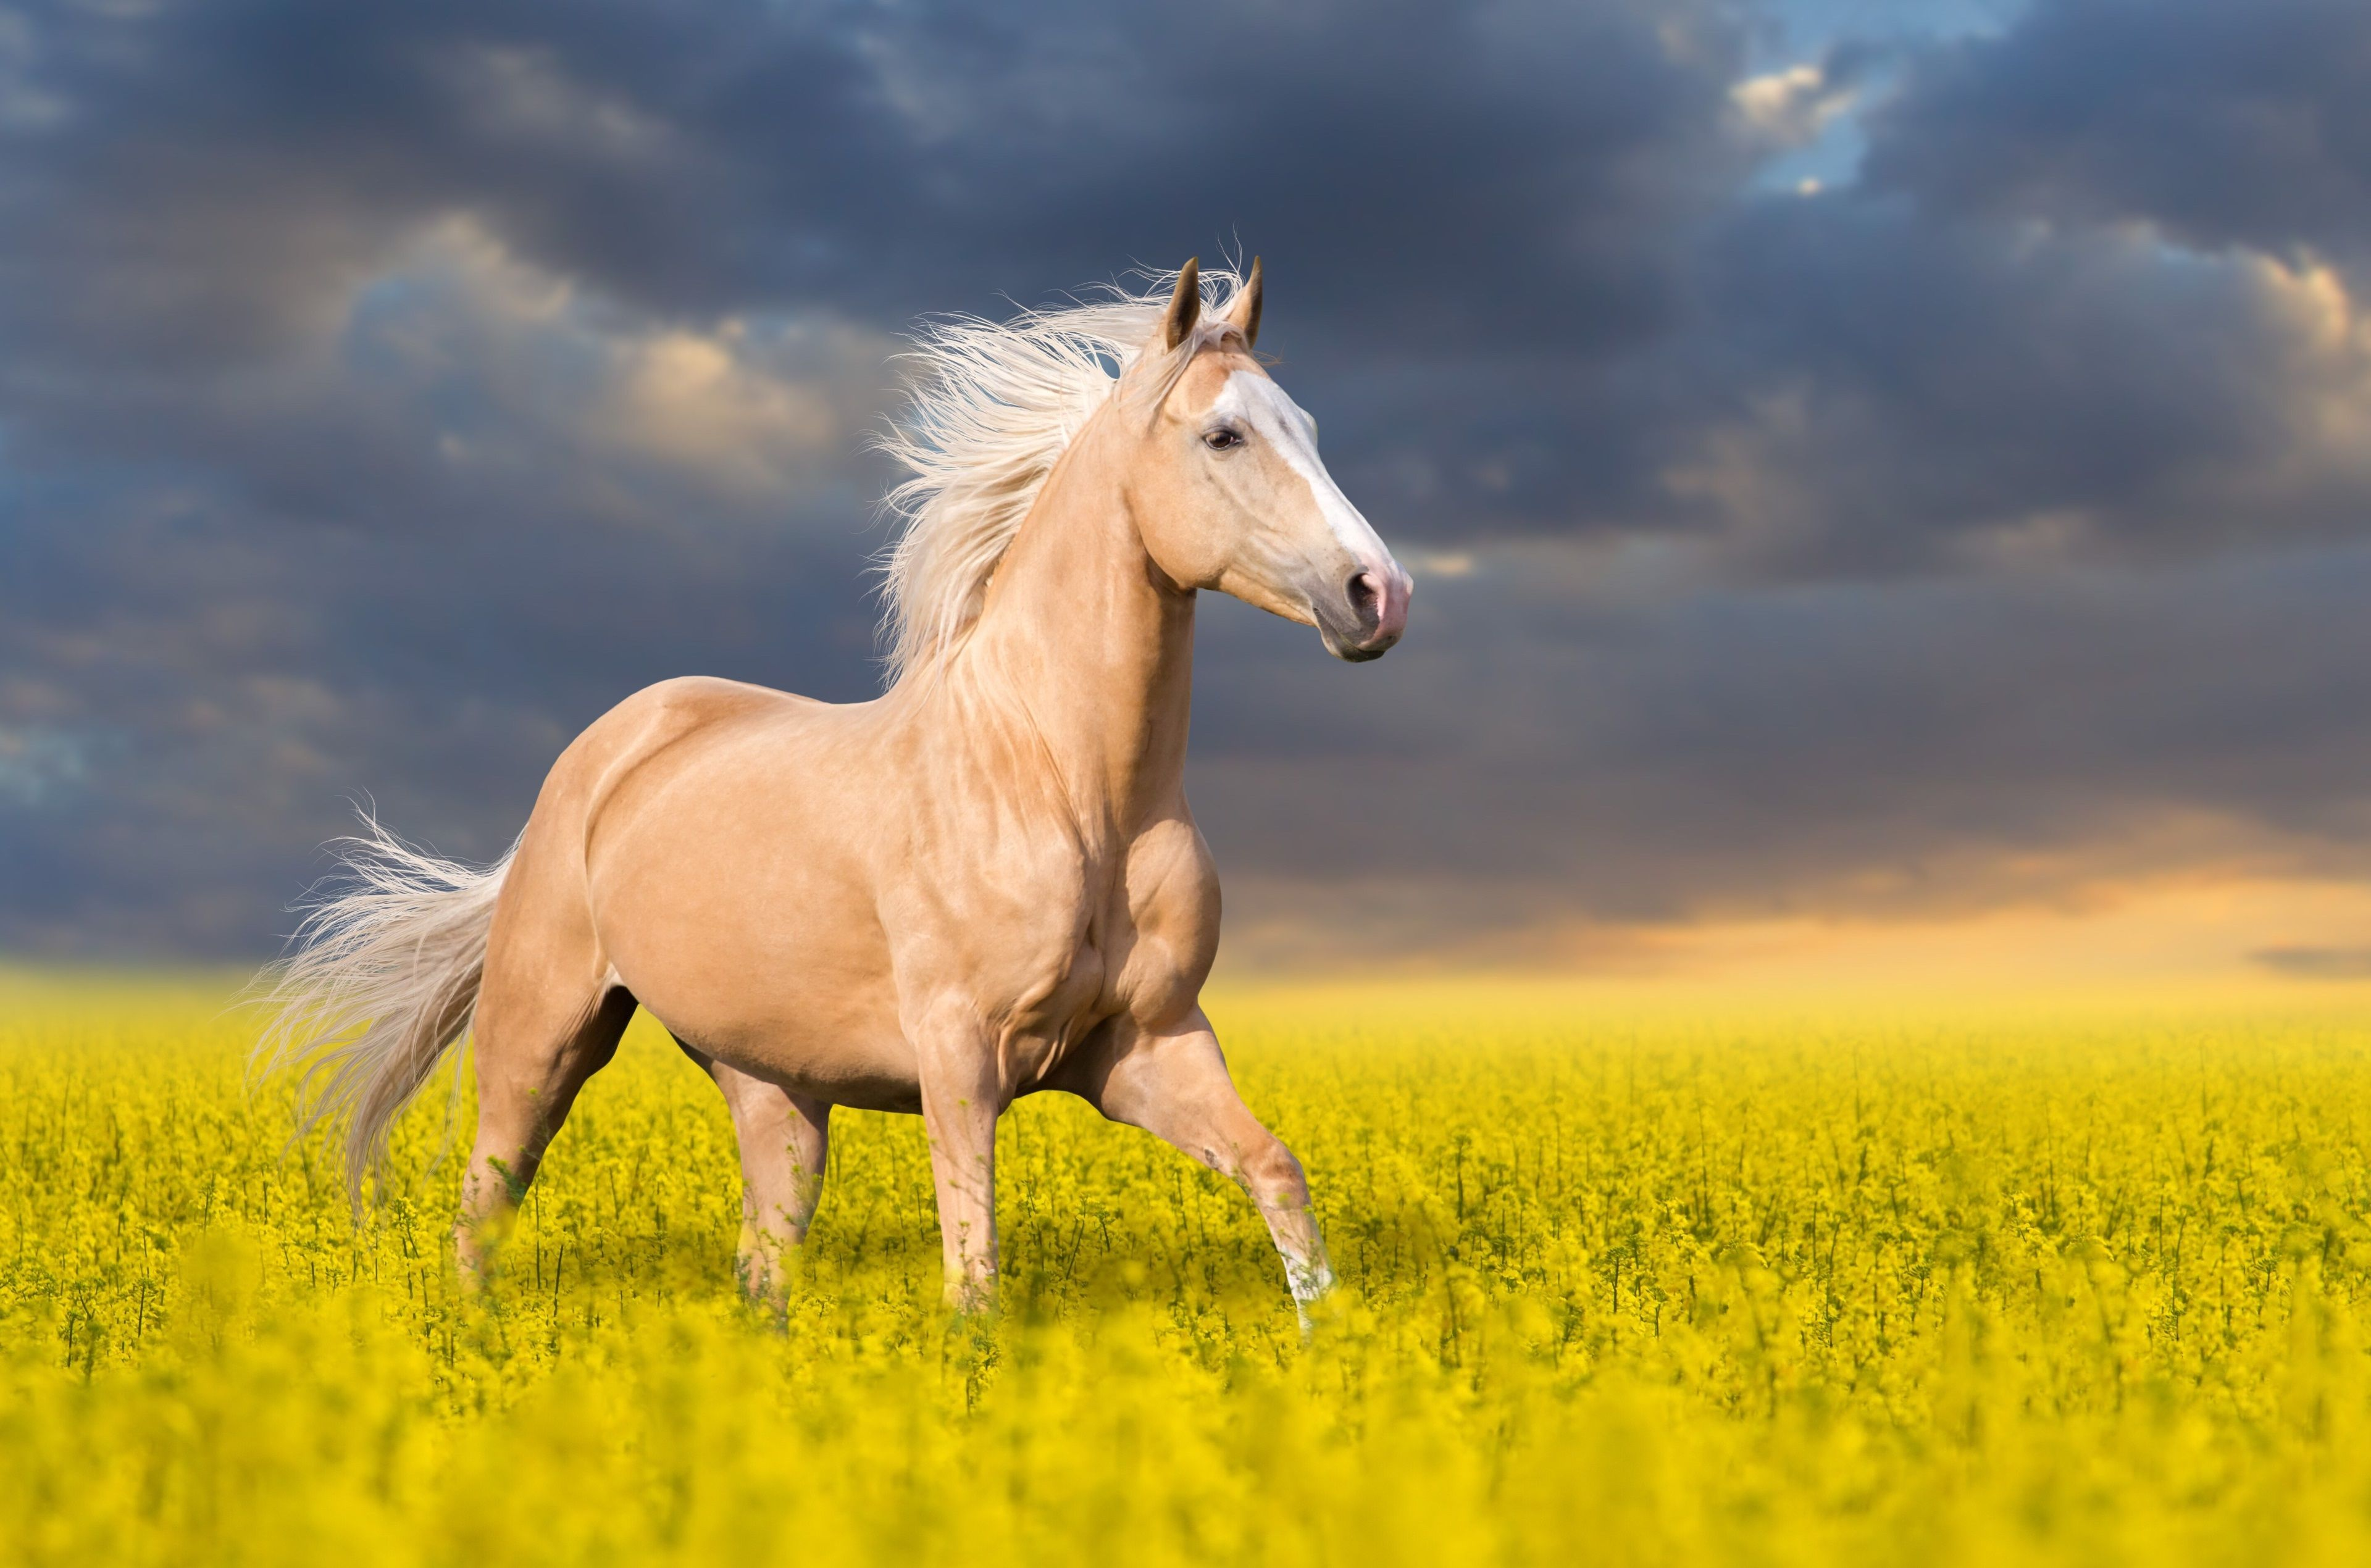 Download Wallpaper Horse High Definition - cad0ad2acd4383bc1c6f2afc117f7e43  Image_223488.jpg